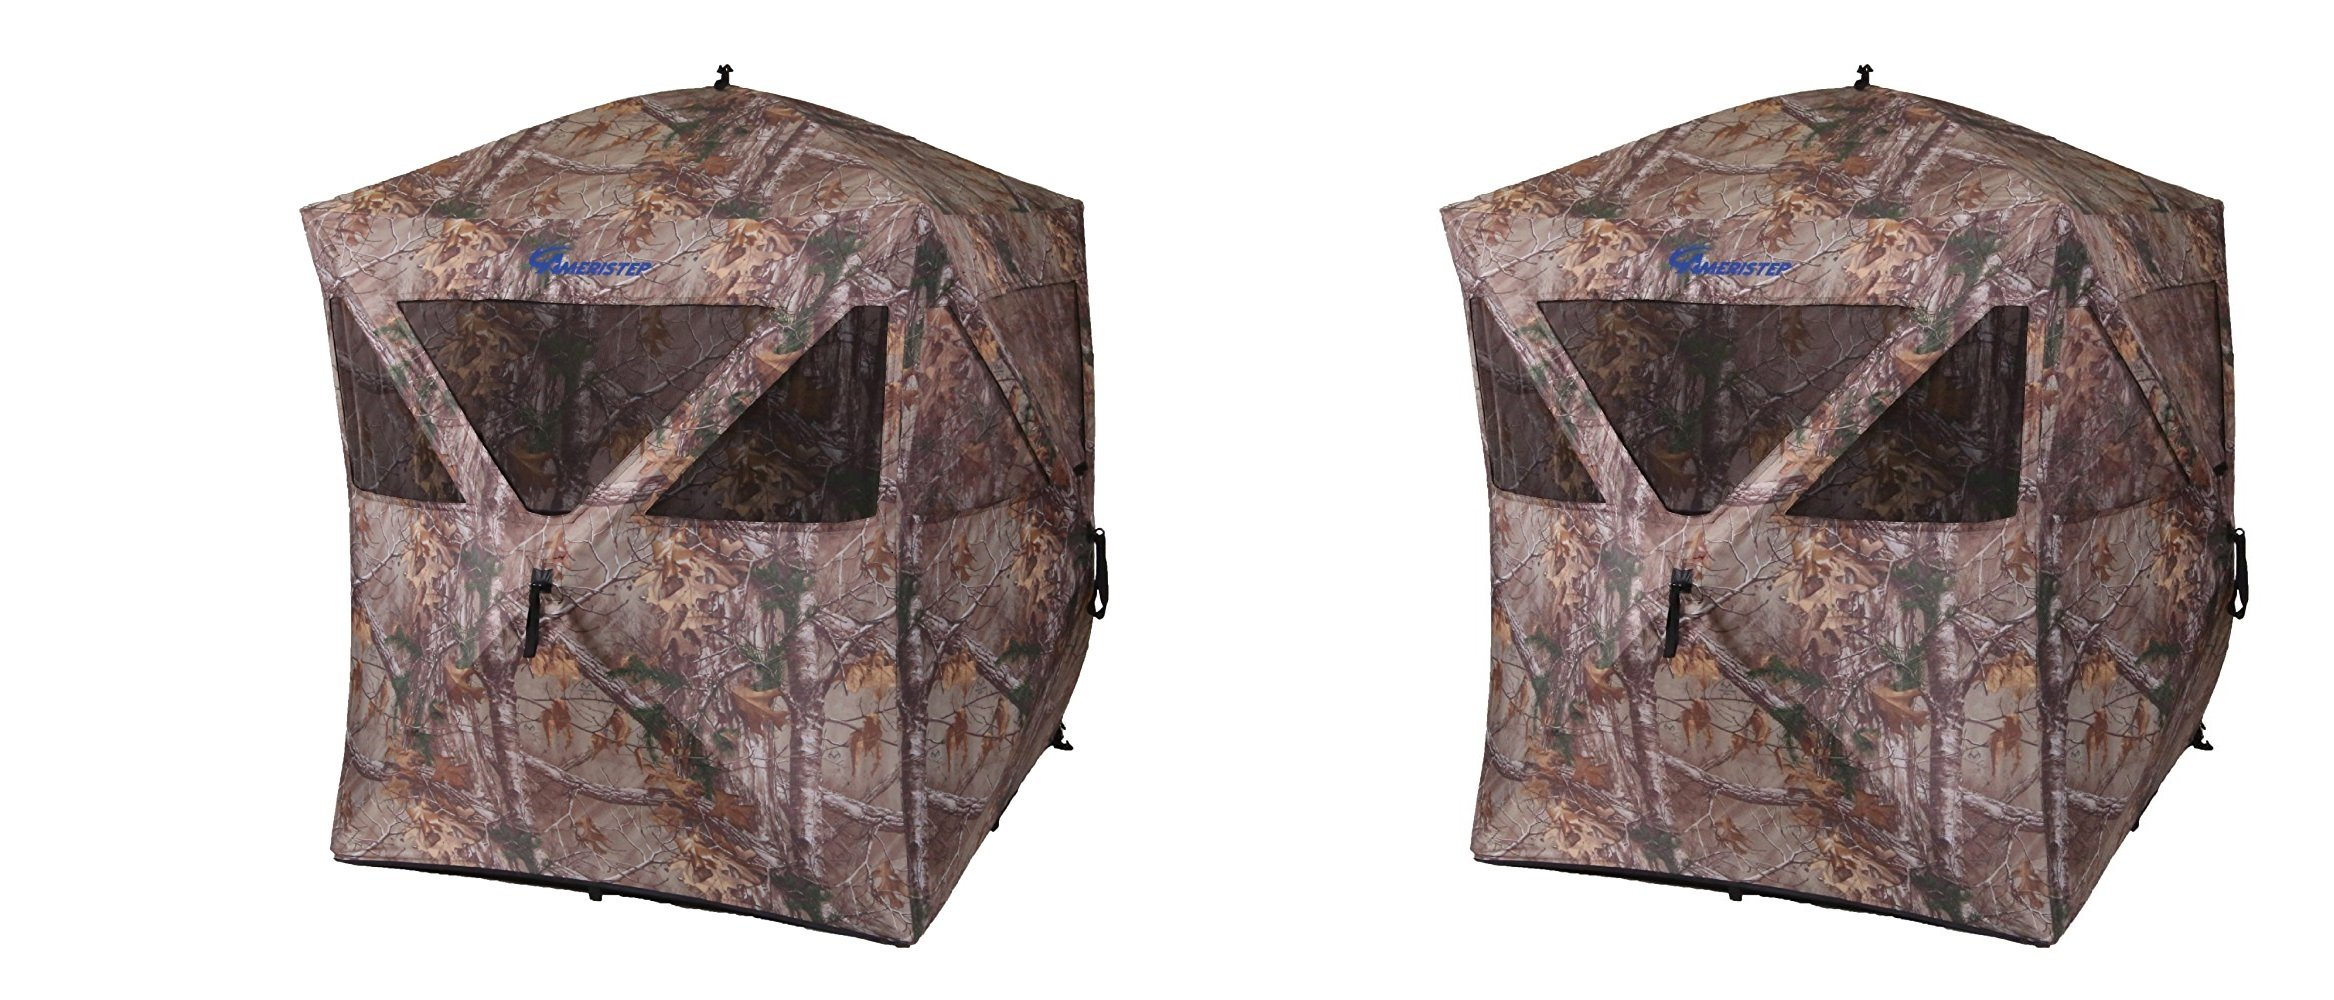 Ameristep Care Taker Hub Blind-Realtree Xtra (Pack of 2) by Ameristep